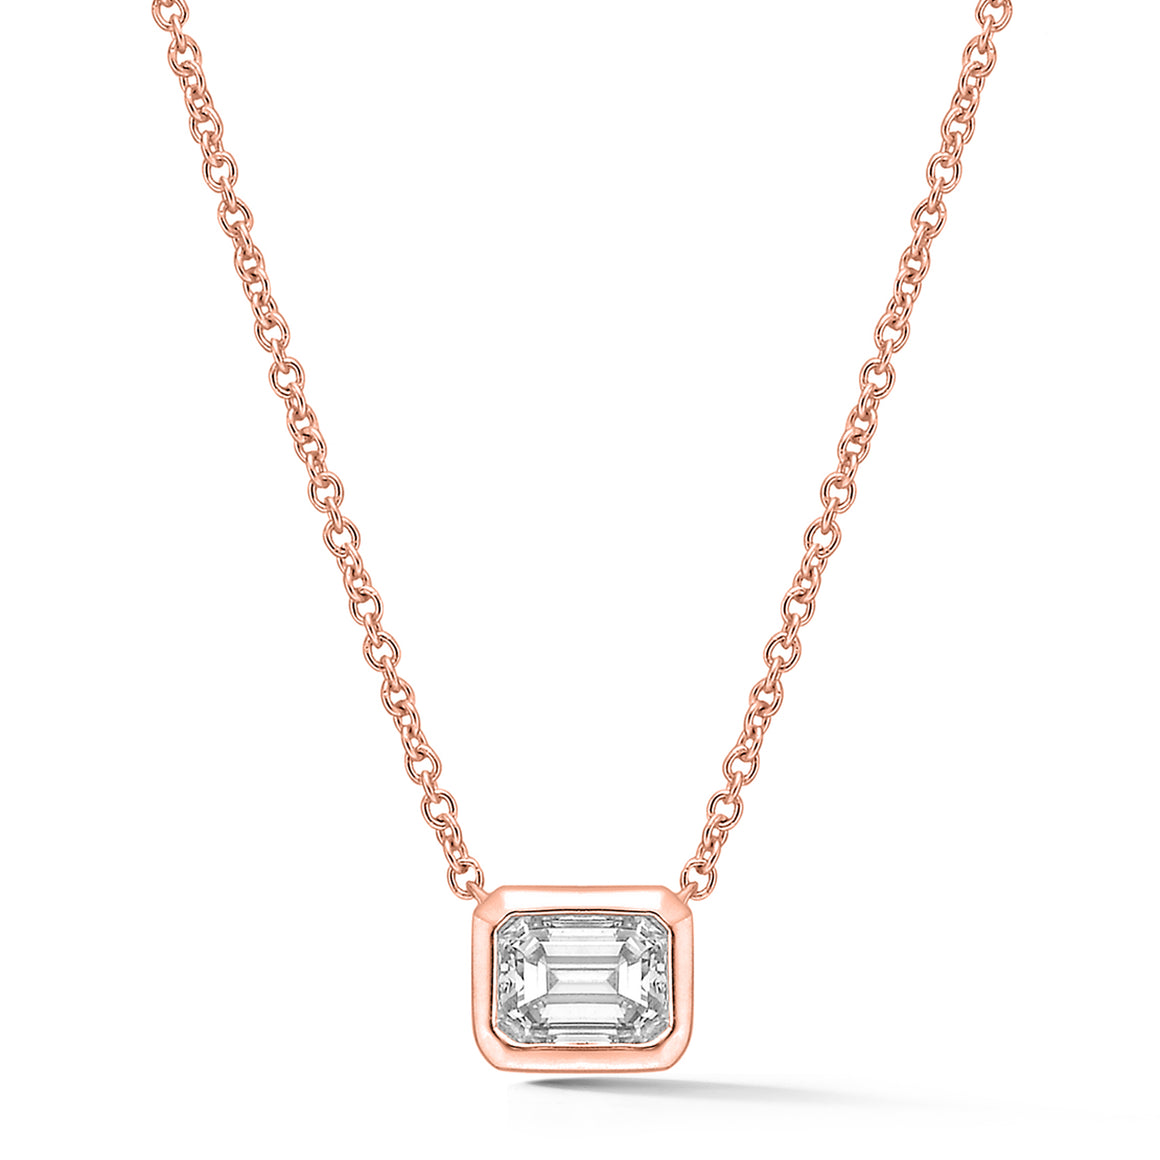 18k Rose Gold Emerald Cut Diamond Necklace - Talisman Collection